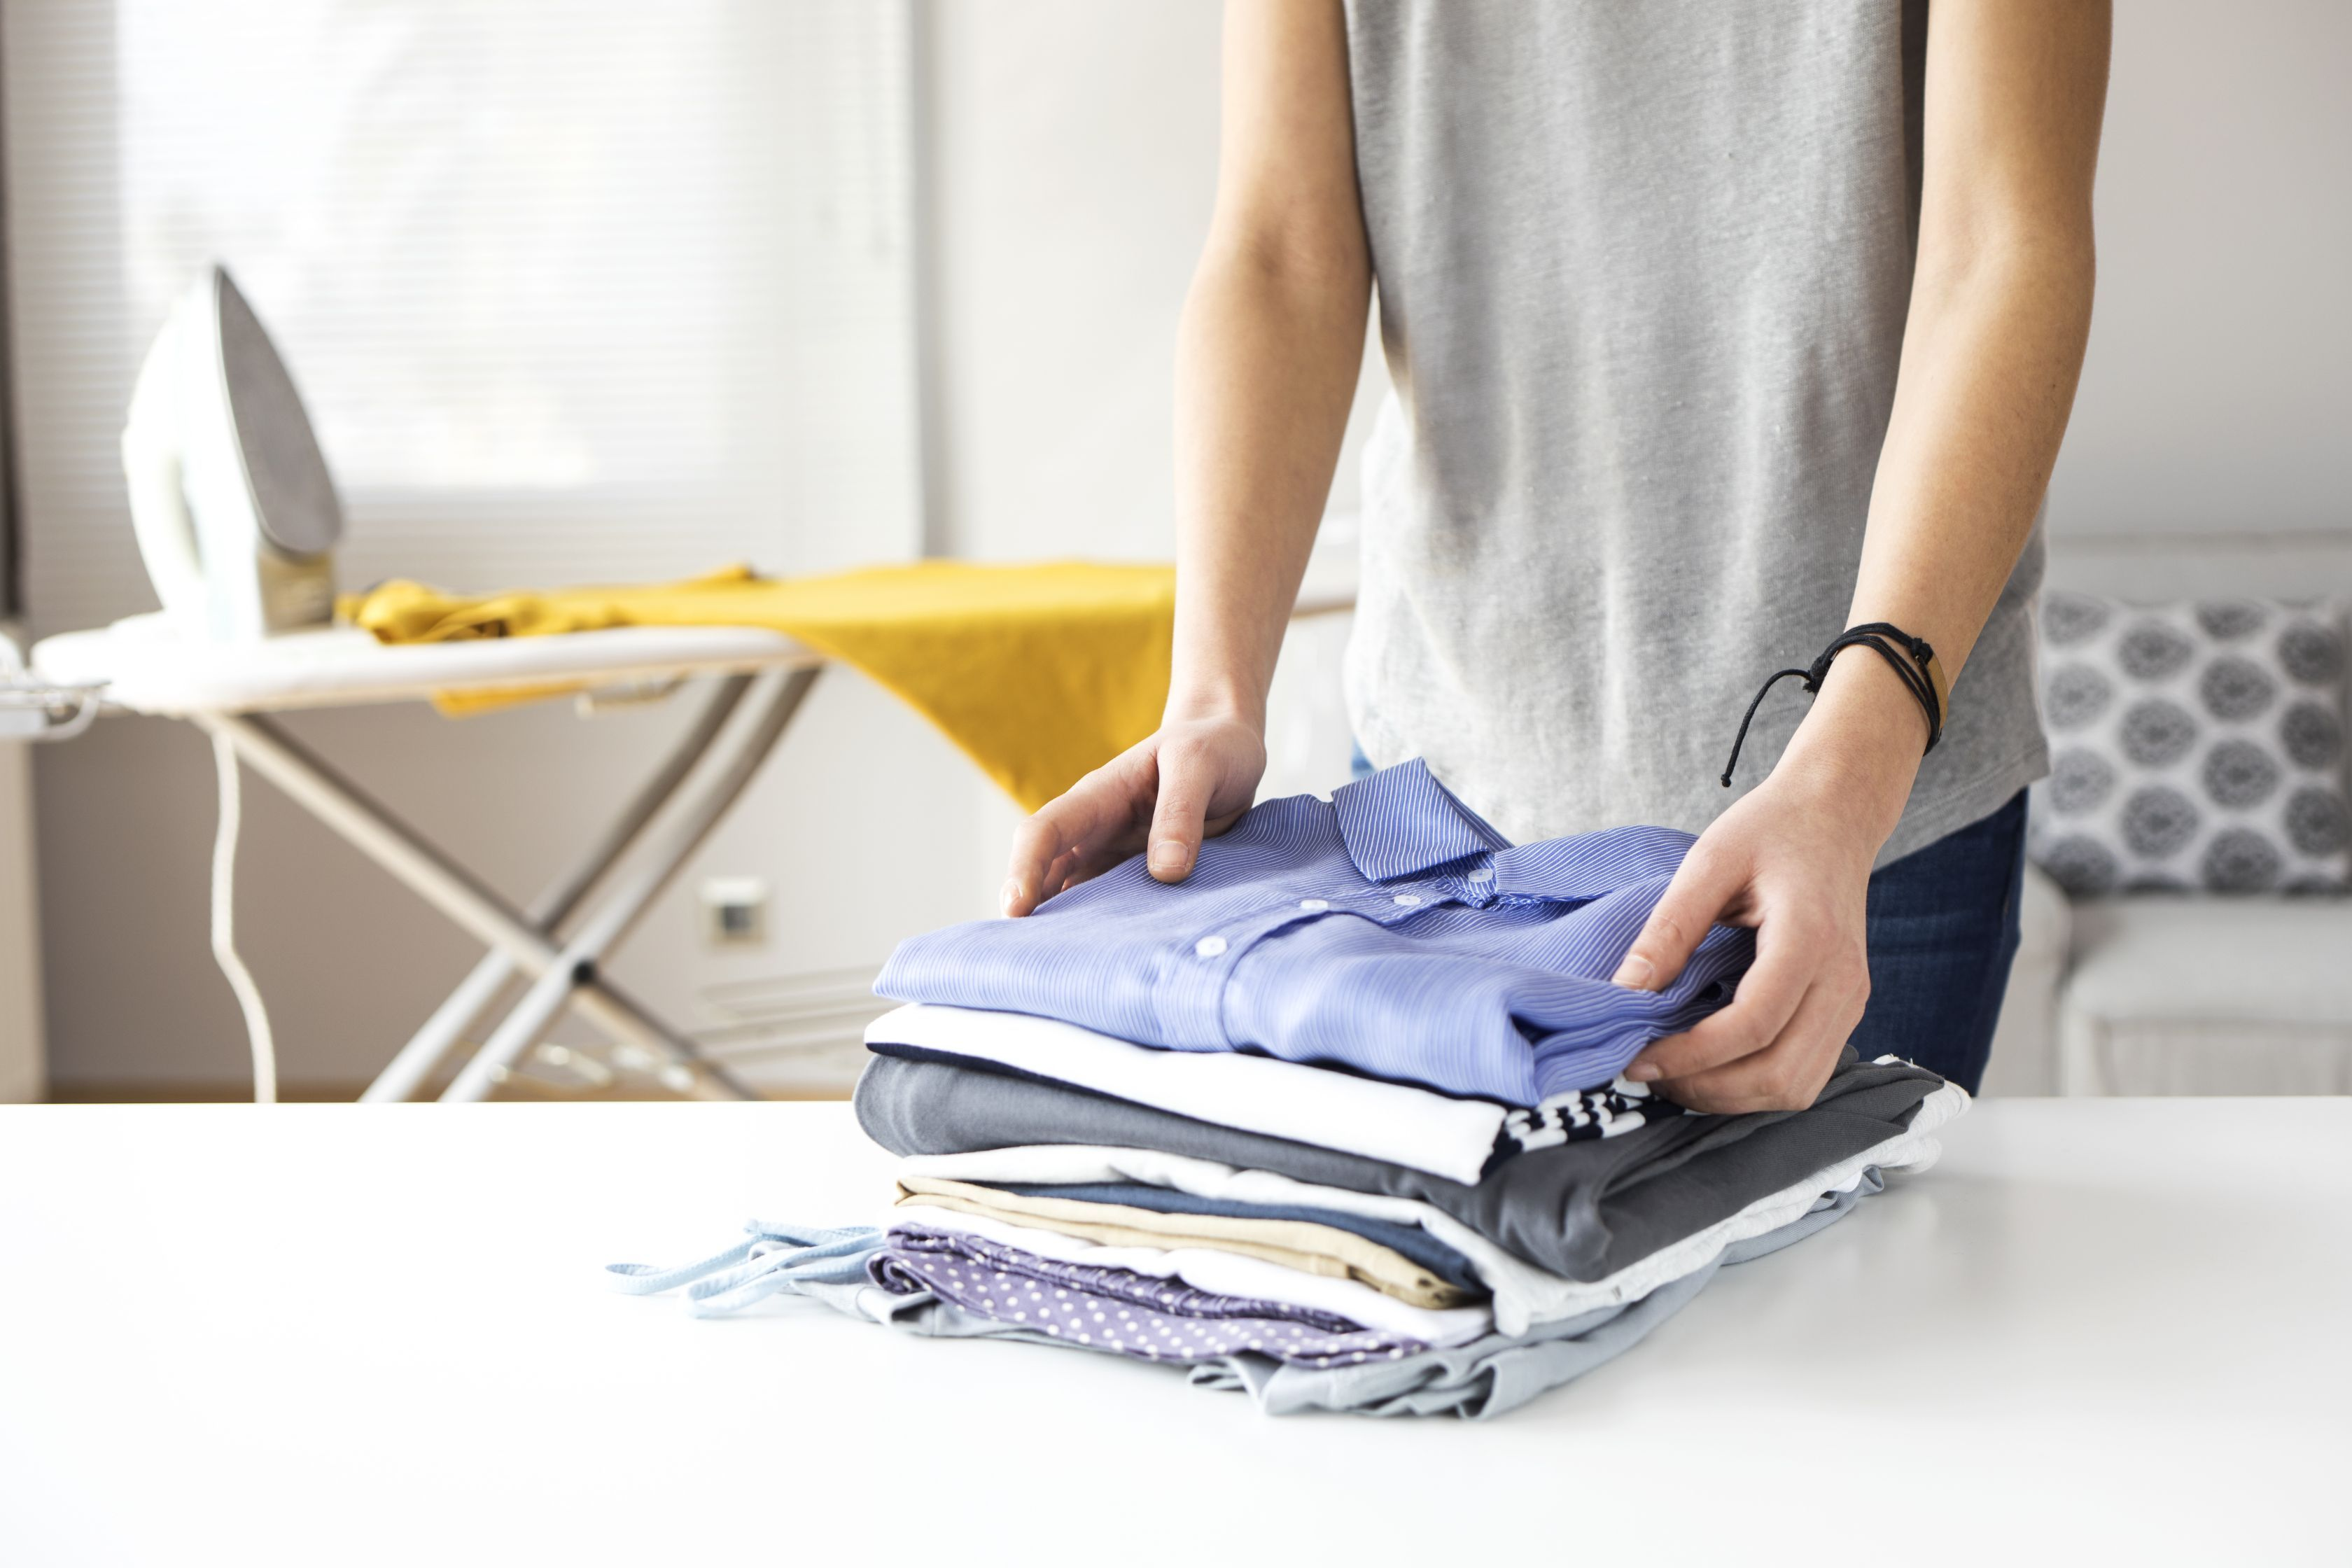 Person neatly folding and stacking clean clothes on a white table